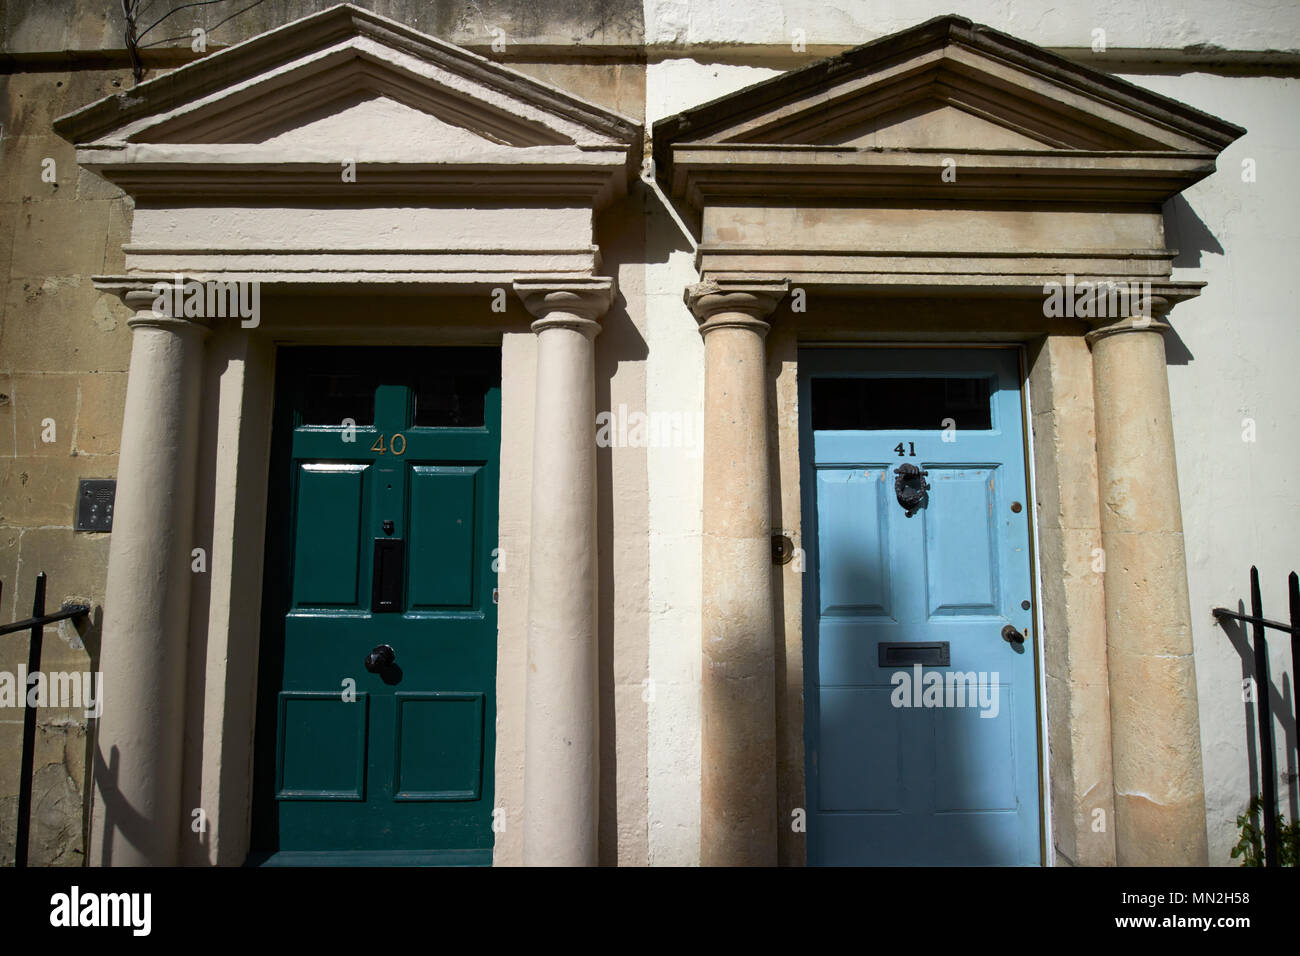 Wooden Six Panel Doors In Architrave With Pediment On Pilasters With  Consoles Doors To Georgian Townhouses